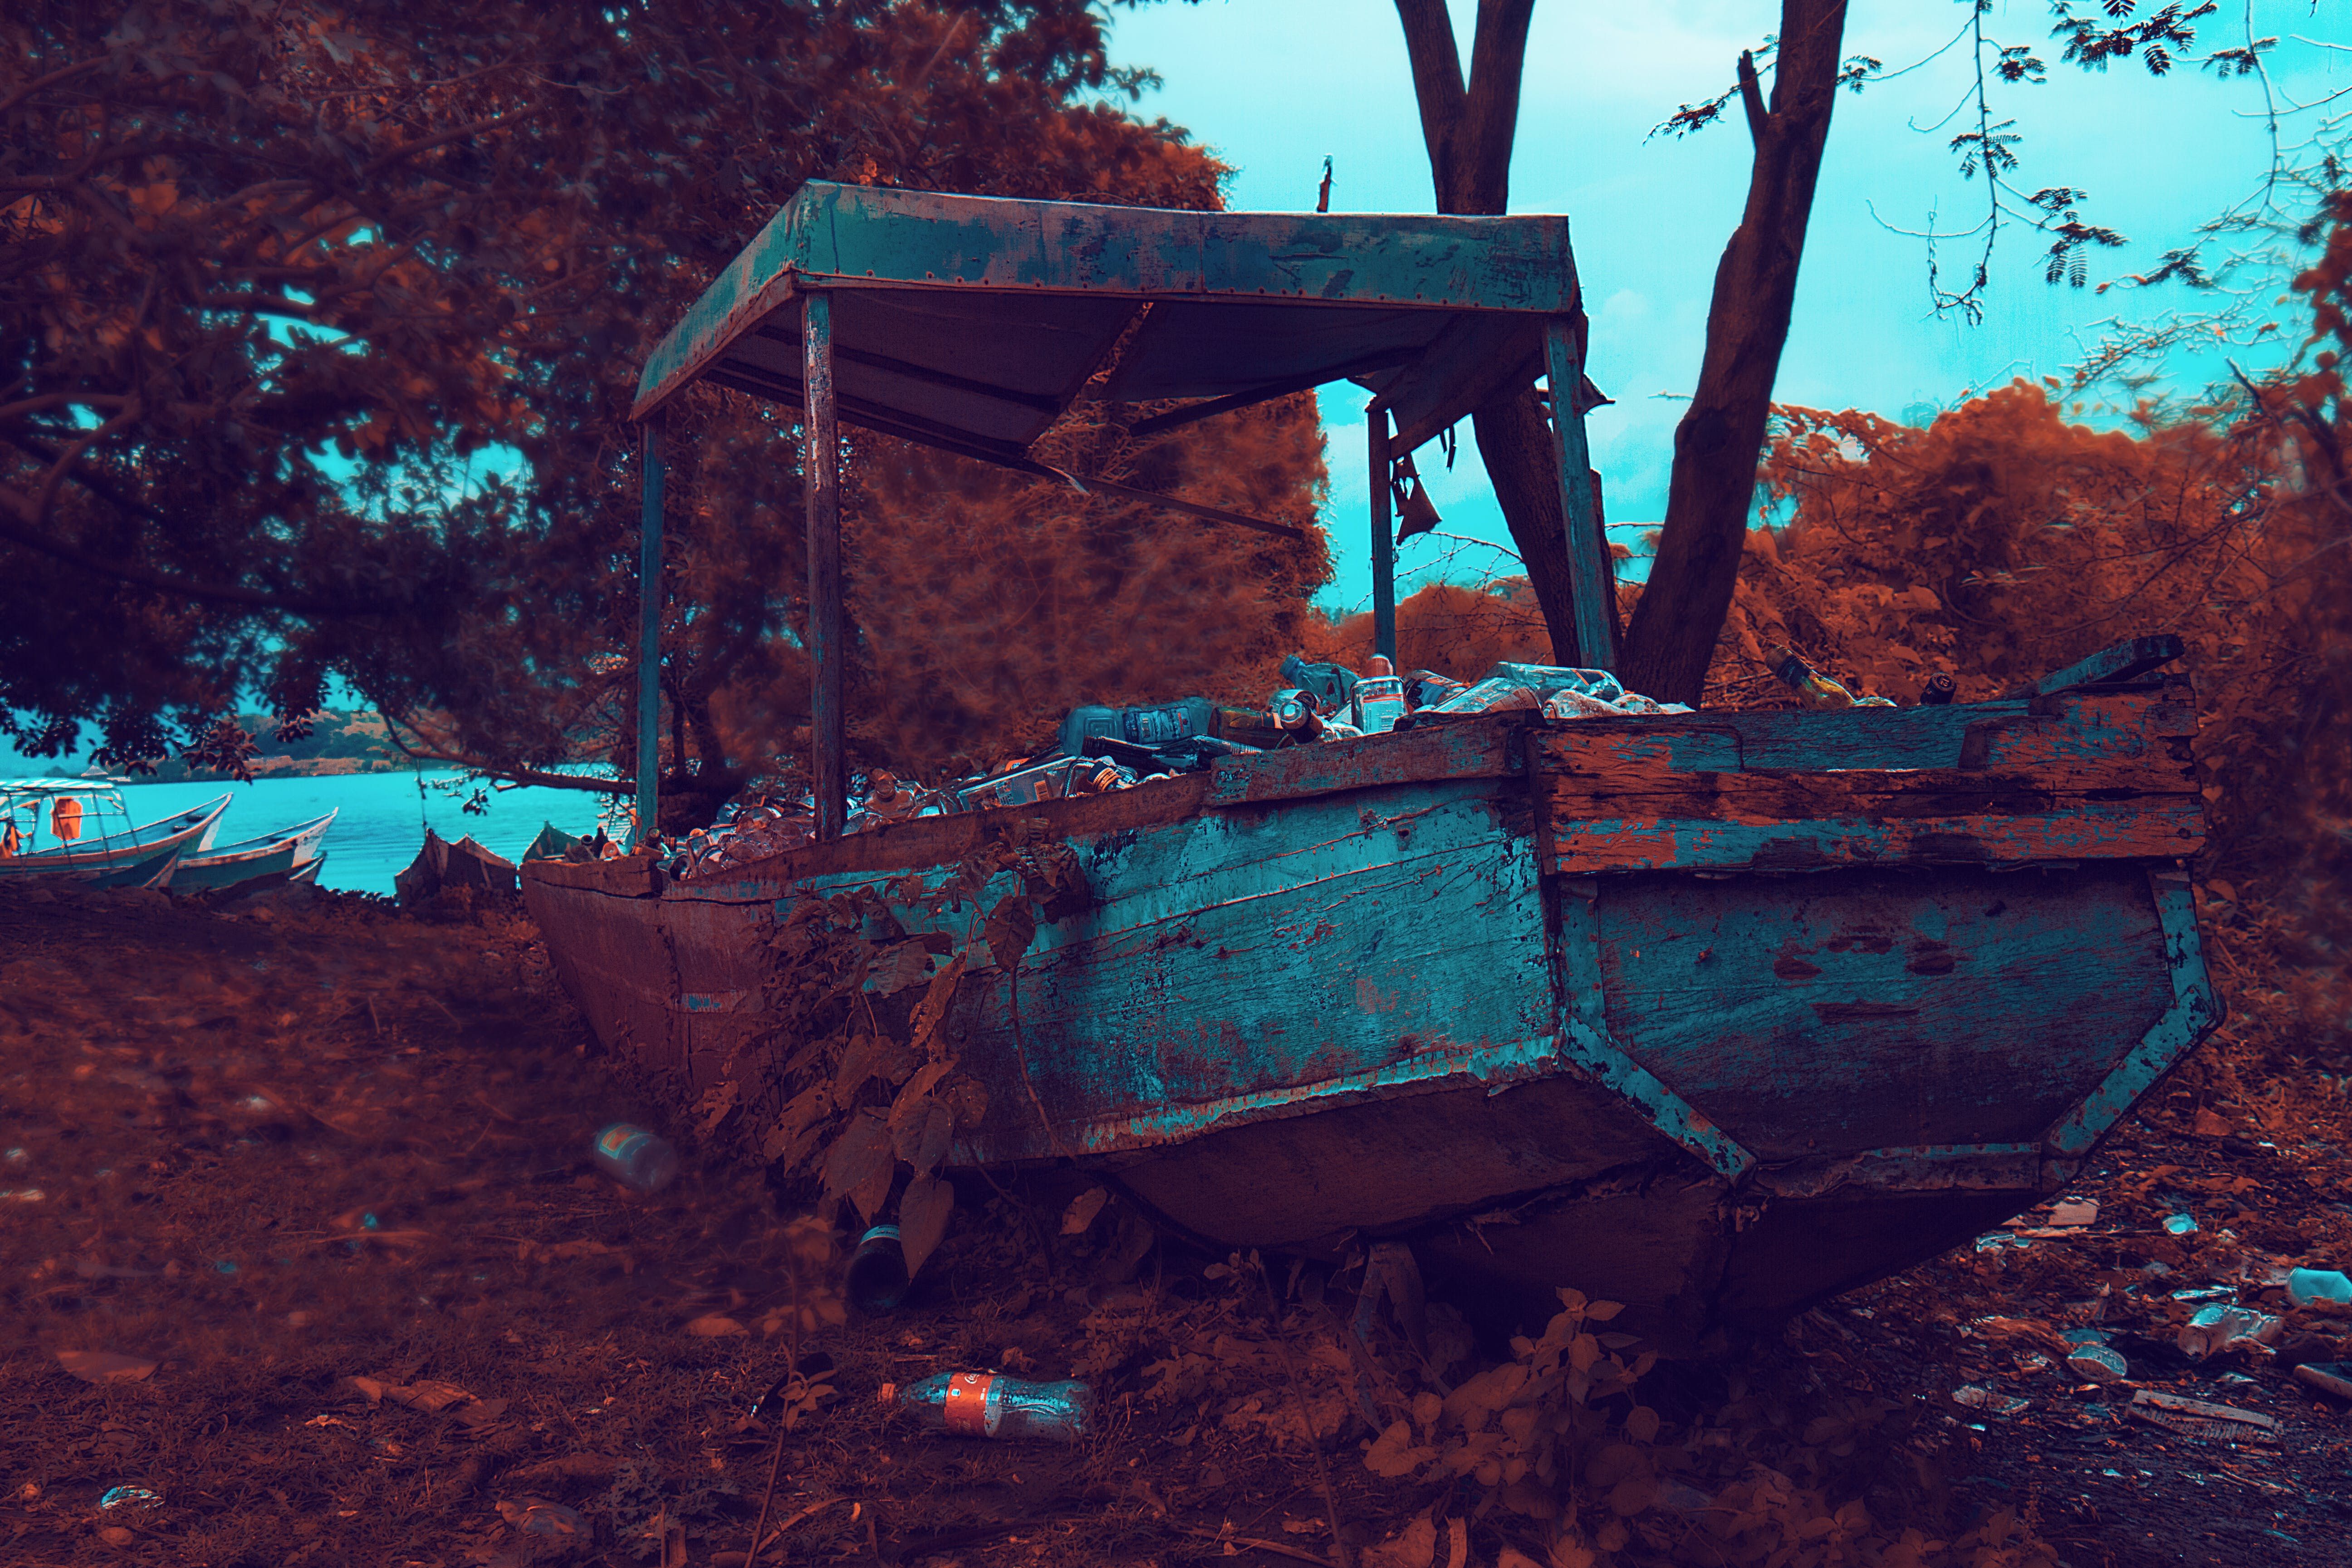 Rusty Brown and Gray Boat Near Trees and Body of Water